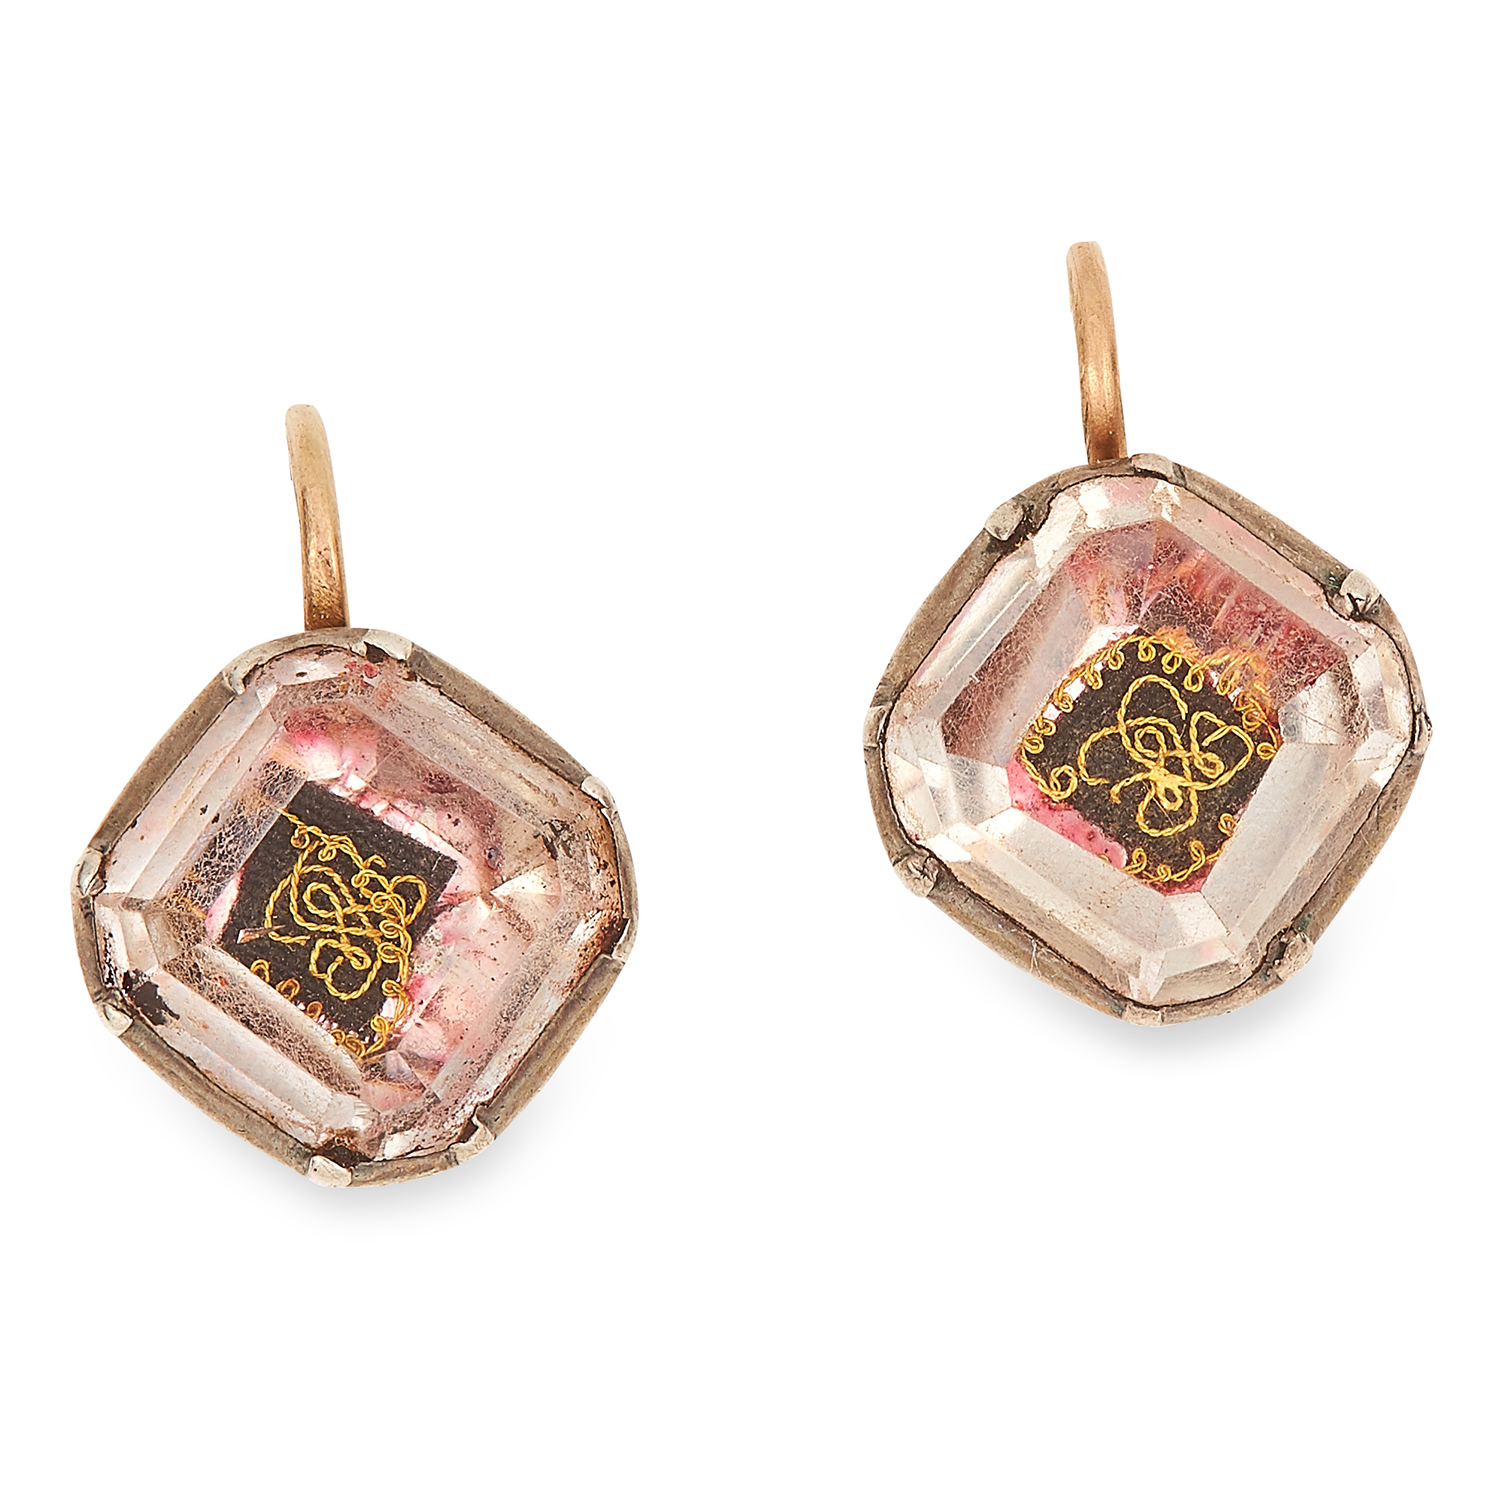 ANTIQUE 17TH CENTURY STUART CRYSTAL EARRINGS in yellow gold and silver, each set with a foiled